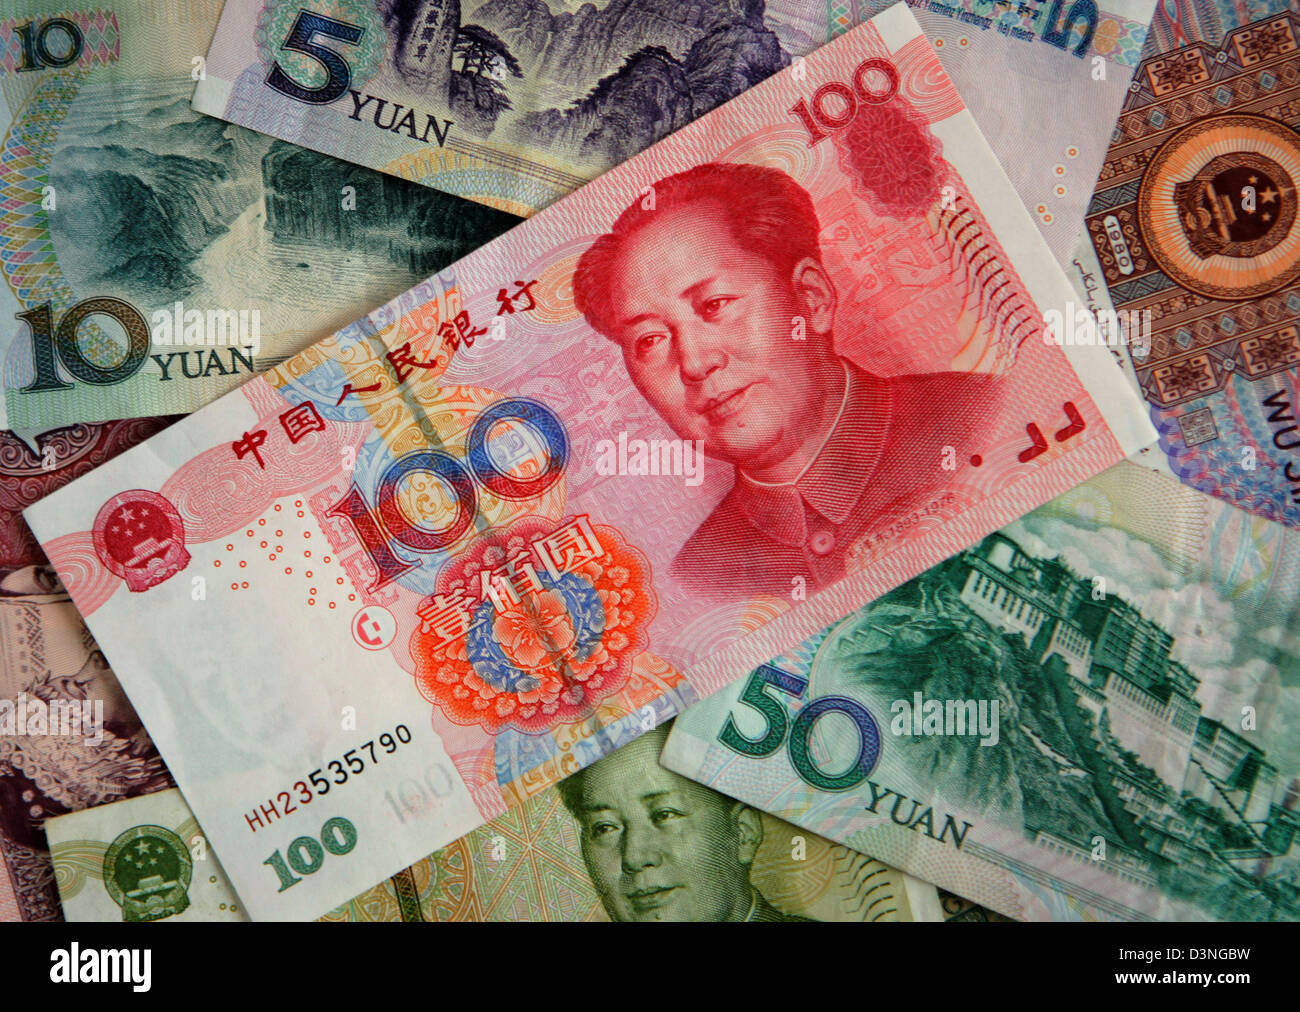 The photo shows the Chinese currency Renminbi with a portrait of ...